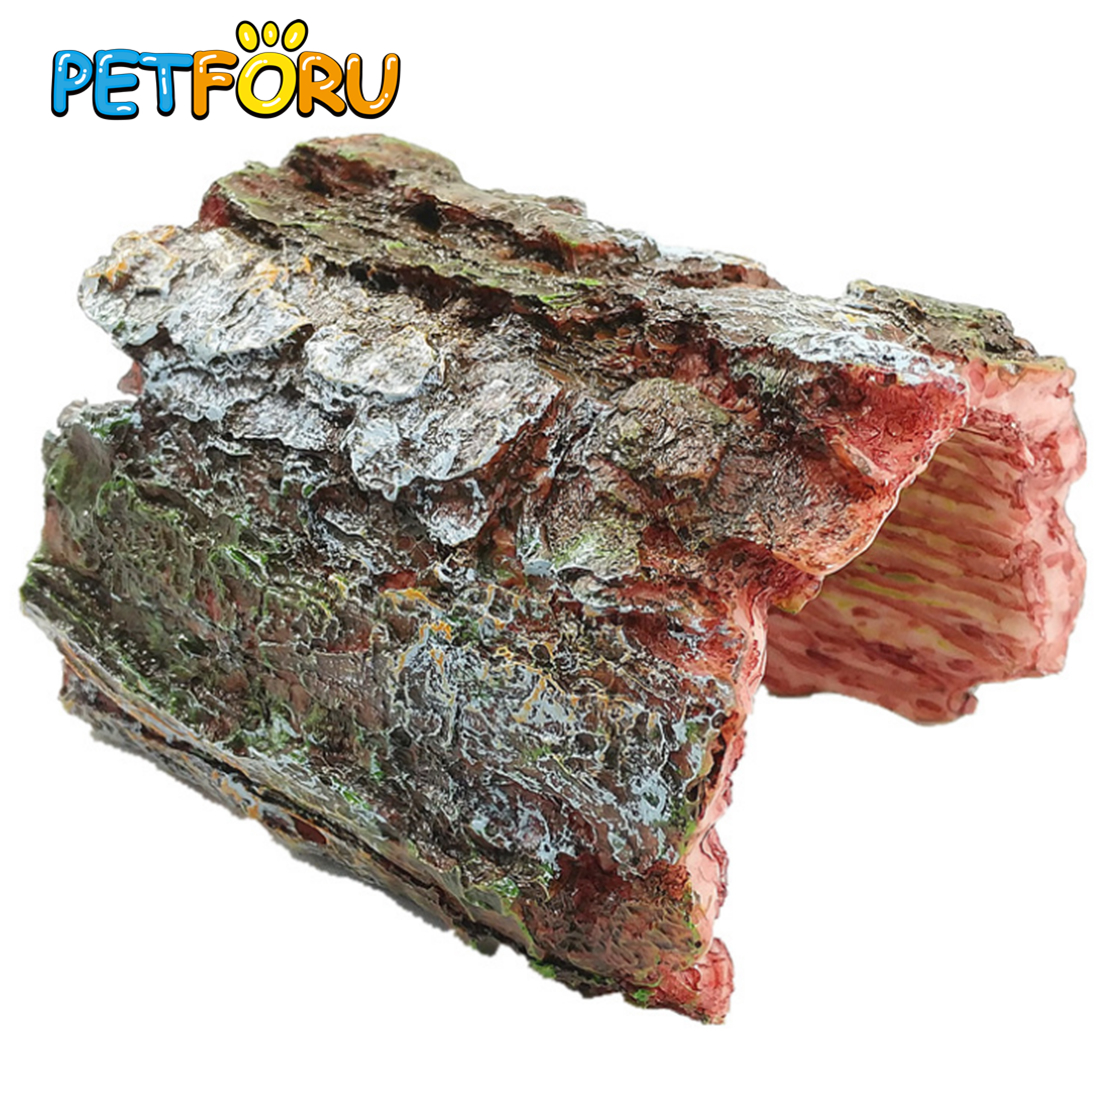 Petforu Emulational Arched Half Tree Shell Reptile Hide Rest Cave Pet Habitat Ornament